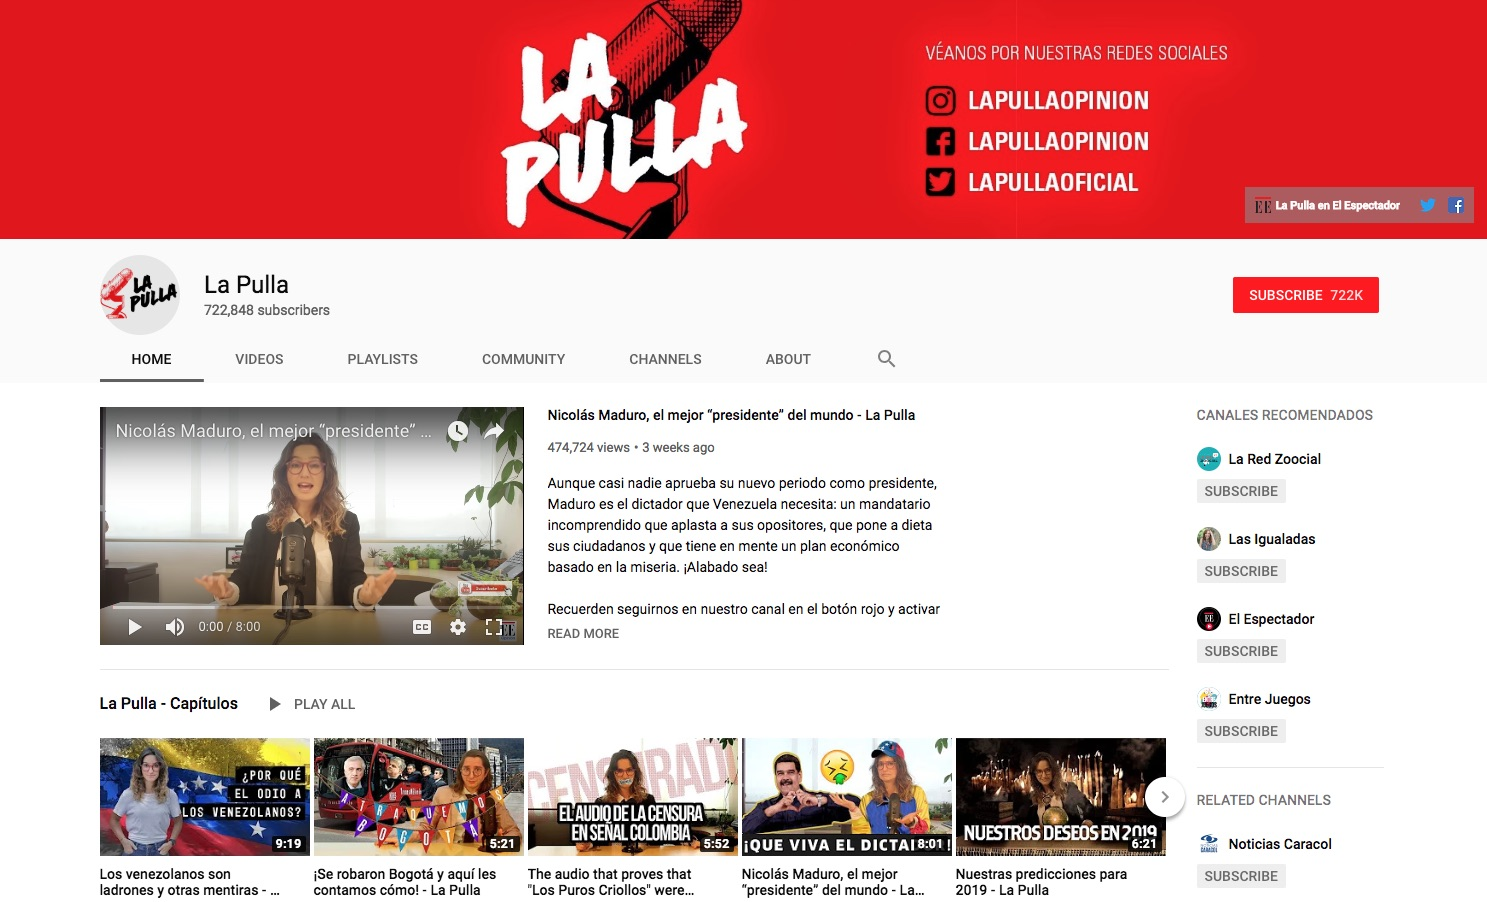 La Pull YouTube channel - How to Engage Millennials